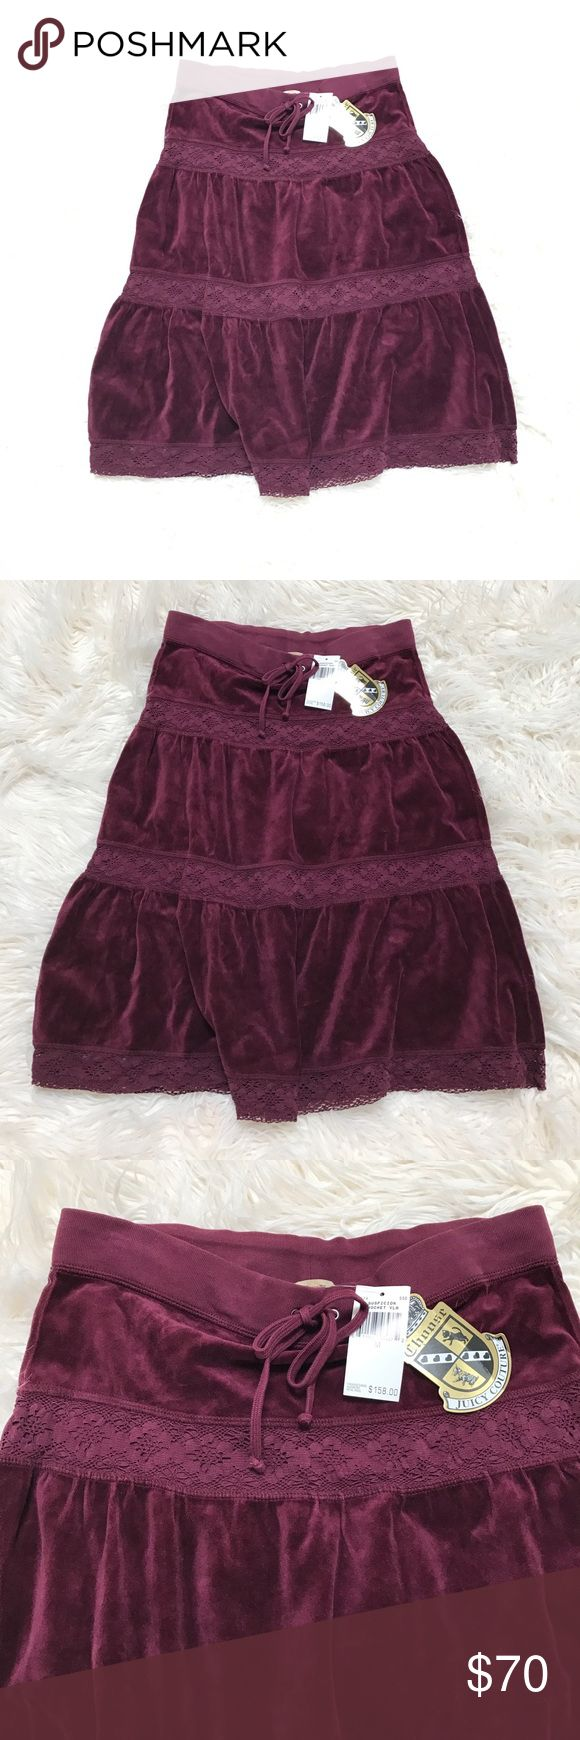 Juicy Couture Suspicion Crochet Velour Skirt Burgundy Juicy Couture Suspicion Crochet Velour skirt size medium.  Brand new with tags!  Purchased for $158.00.  Brand new, never worn. Burgundy is in high style this season! This is a cute skirt to hit the beach or mall or can be dressed up to go to dinner too.  Very cute and very fashionable! From a smoke free home!! Juicy Couture Skirts